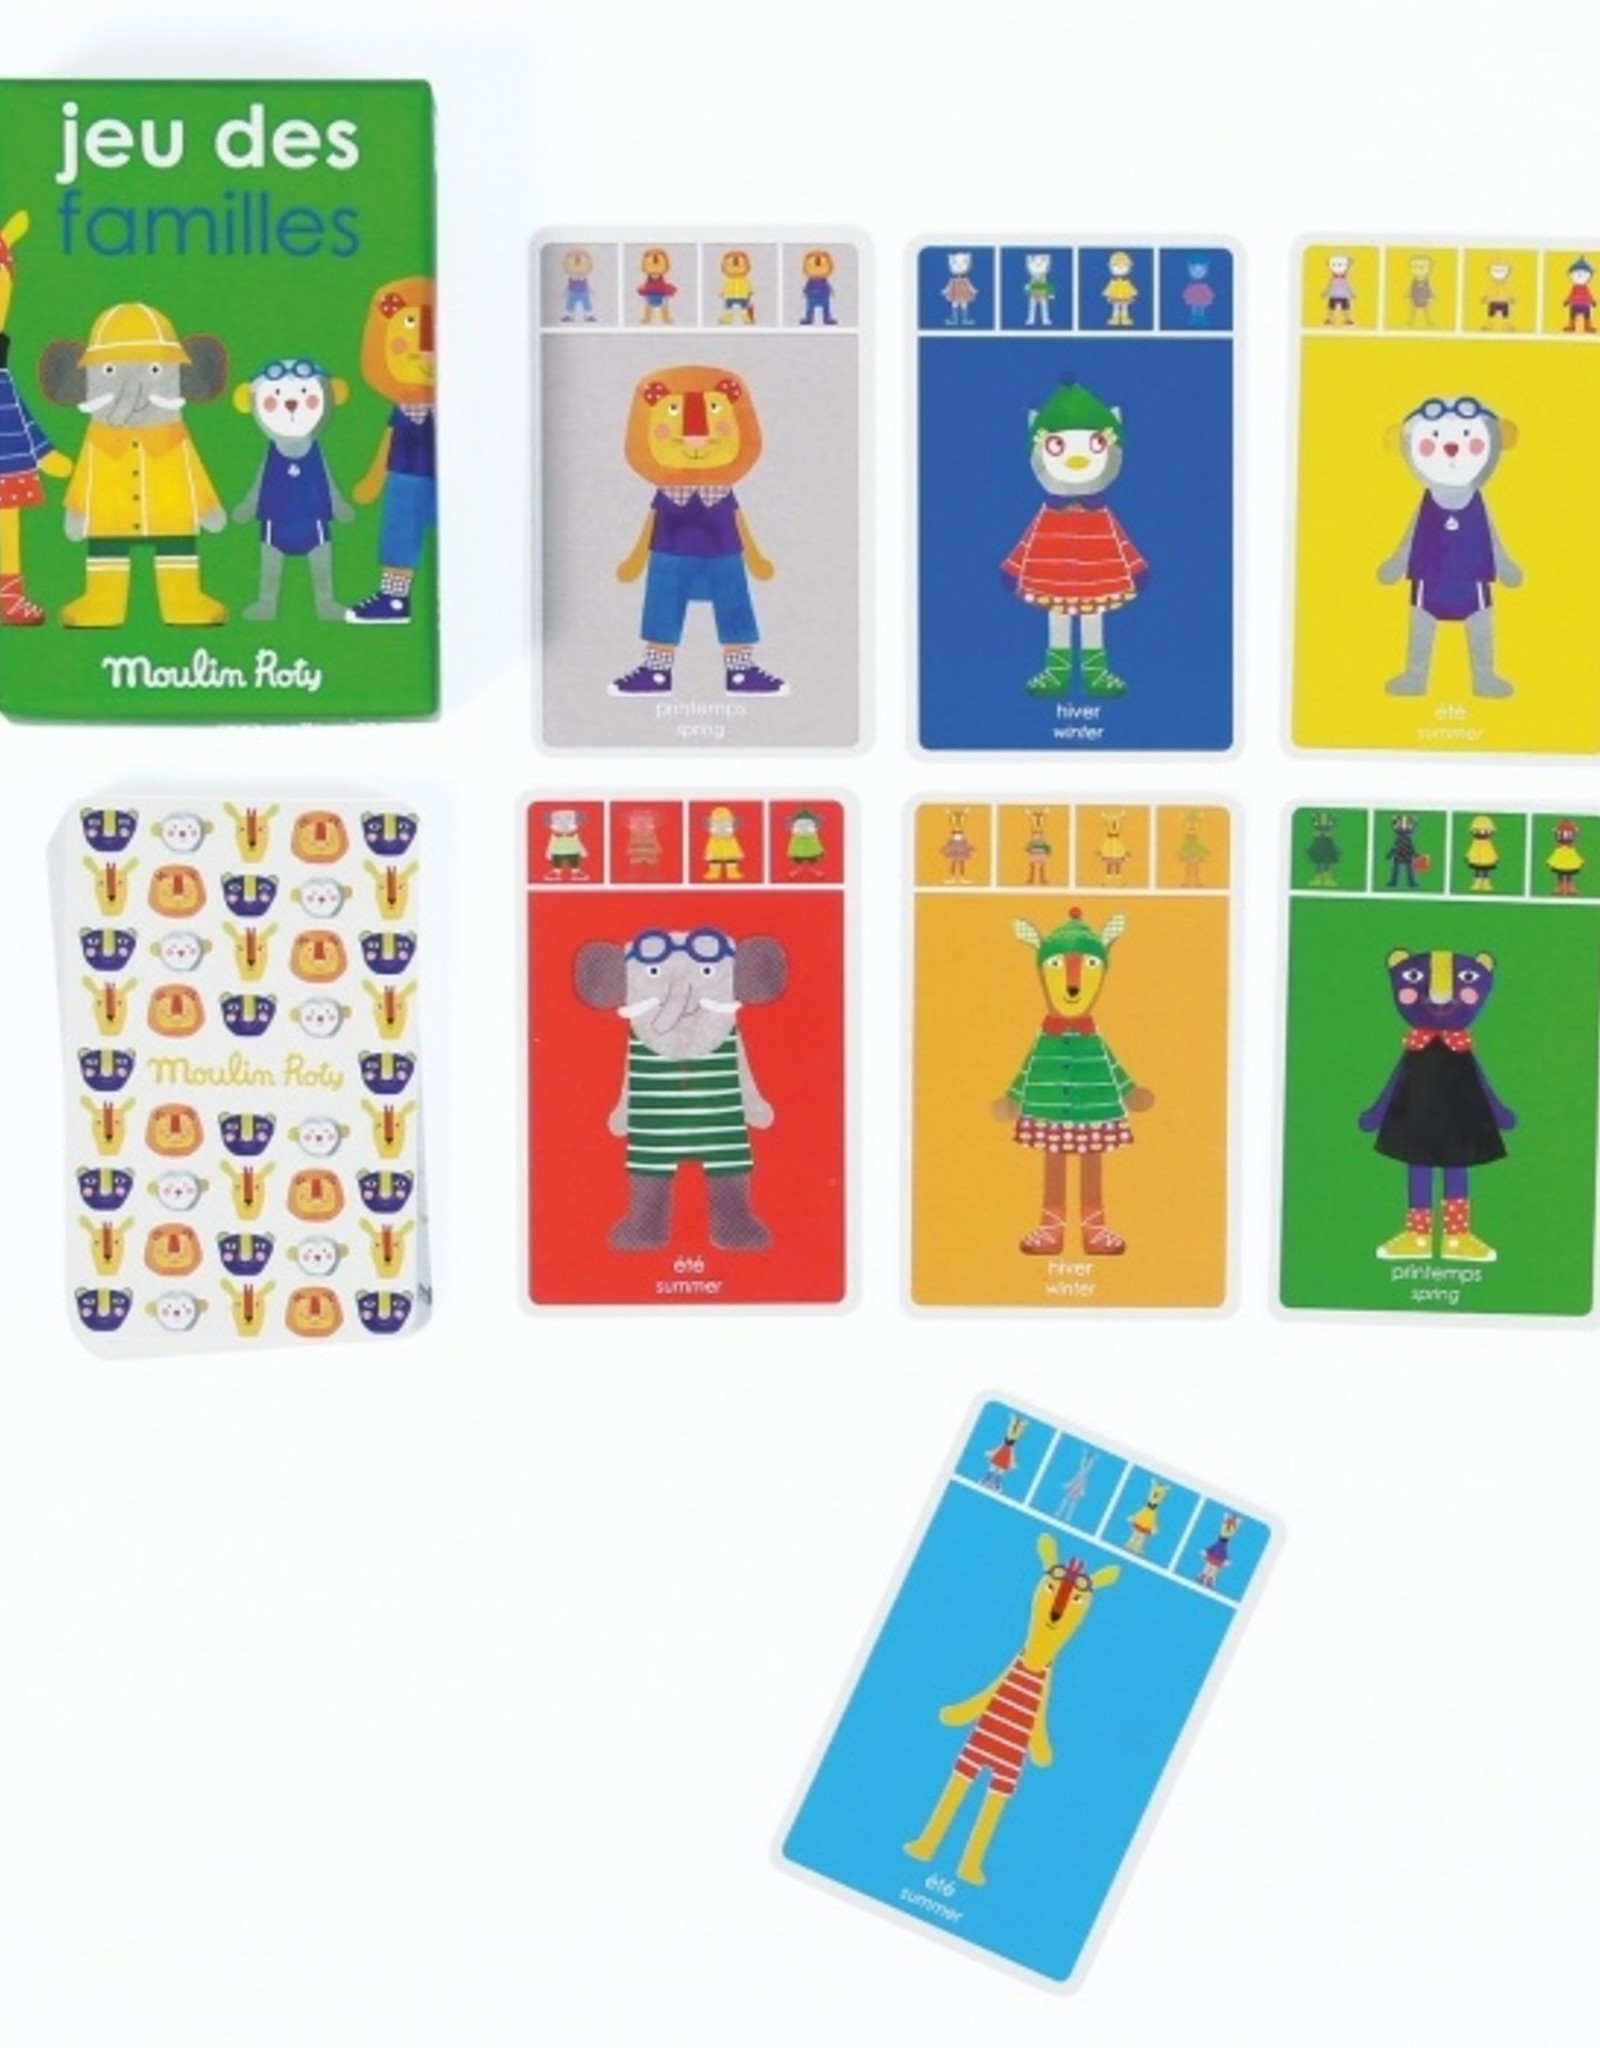 Moulin Roty Les Popipop 7 family Game